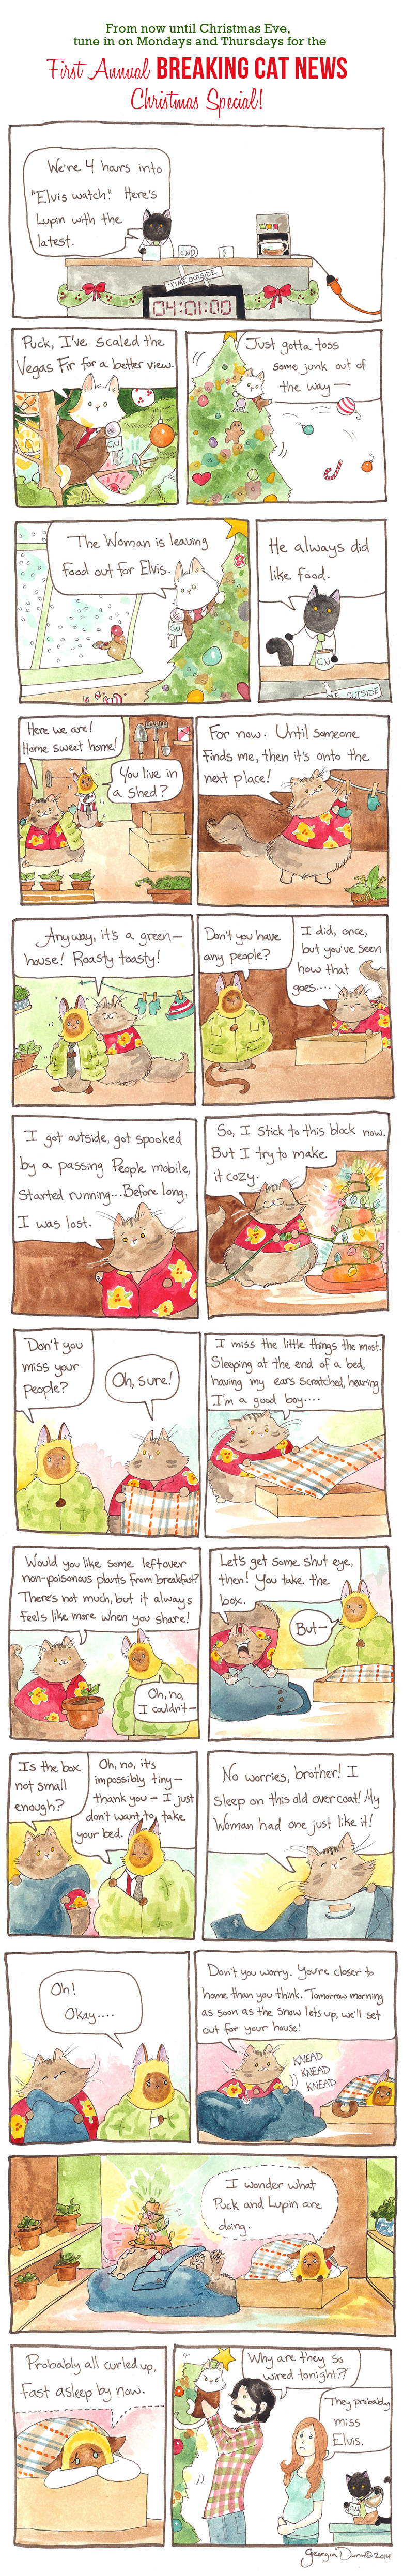 Breaking Cat News Christmas Special Part Four